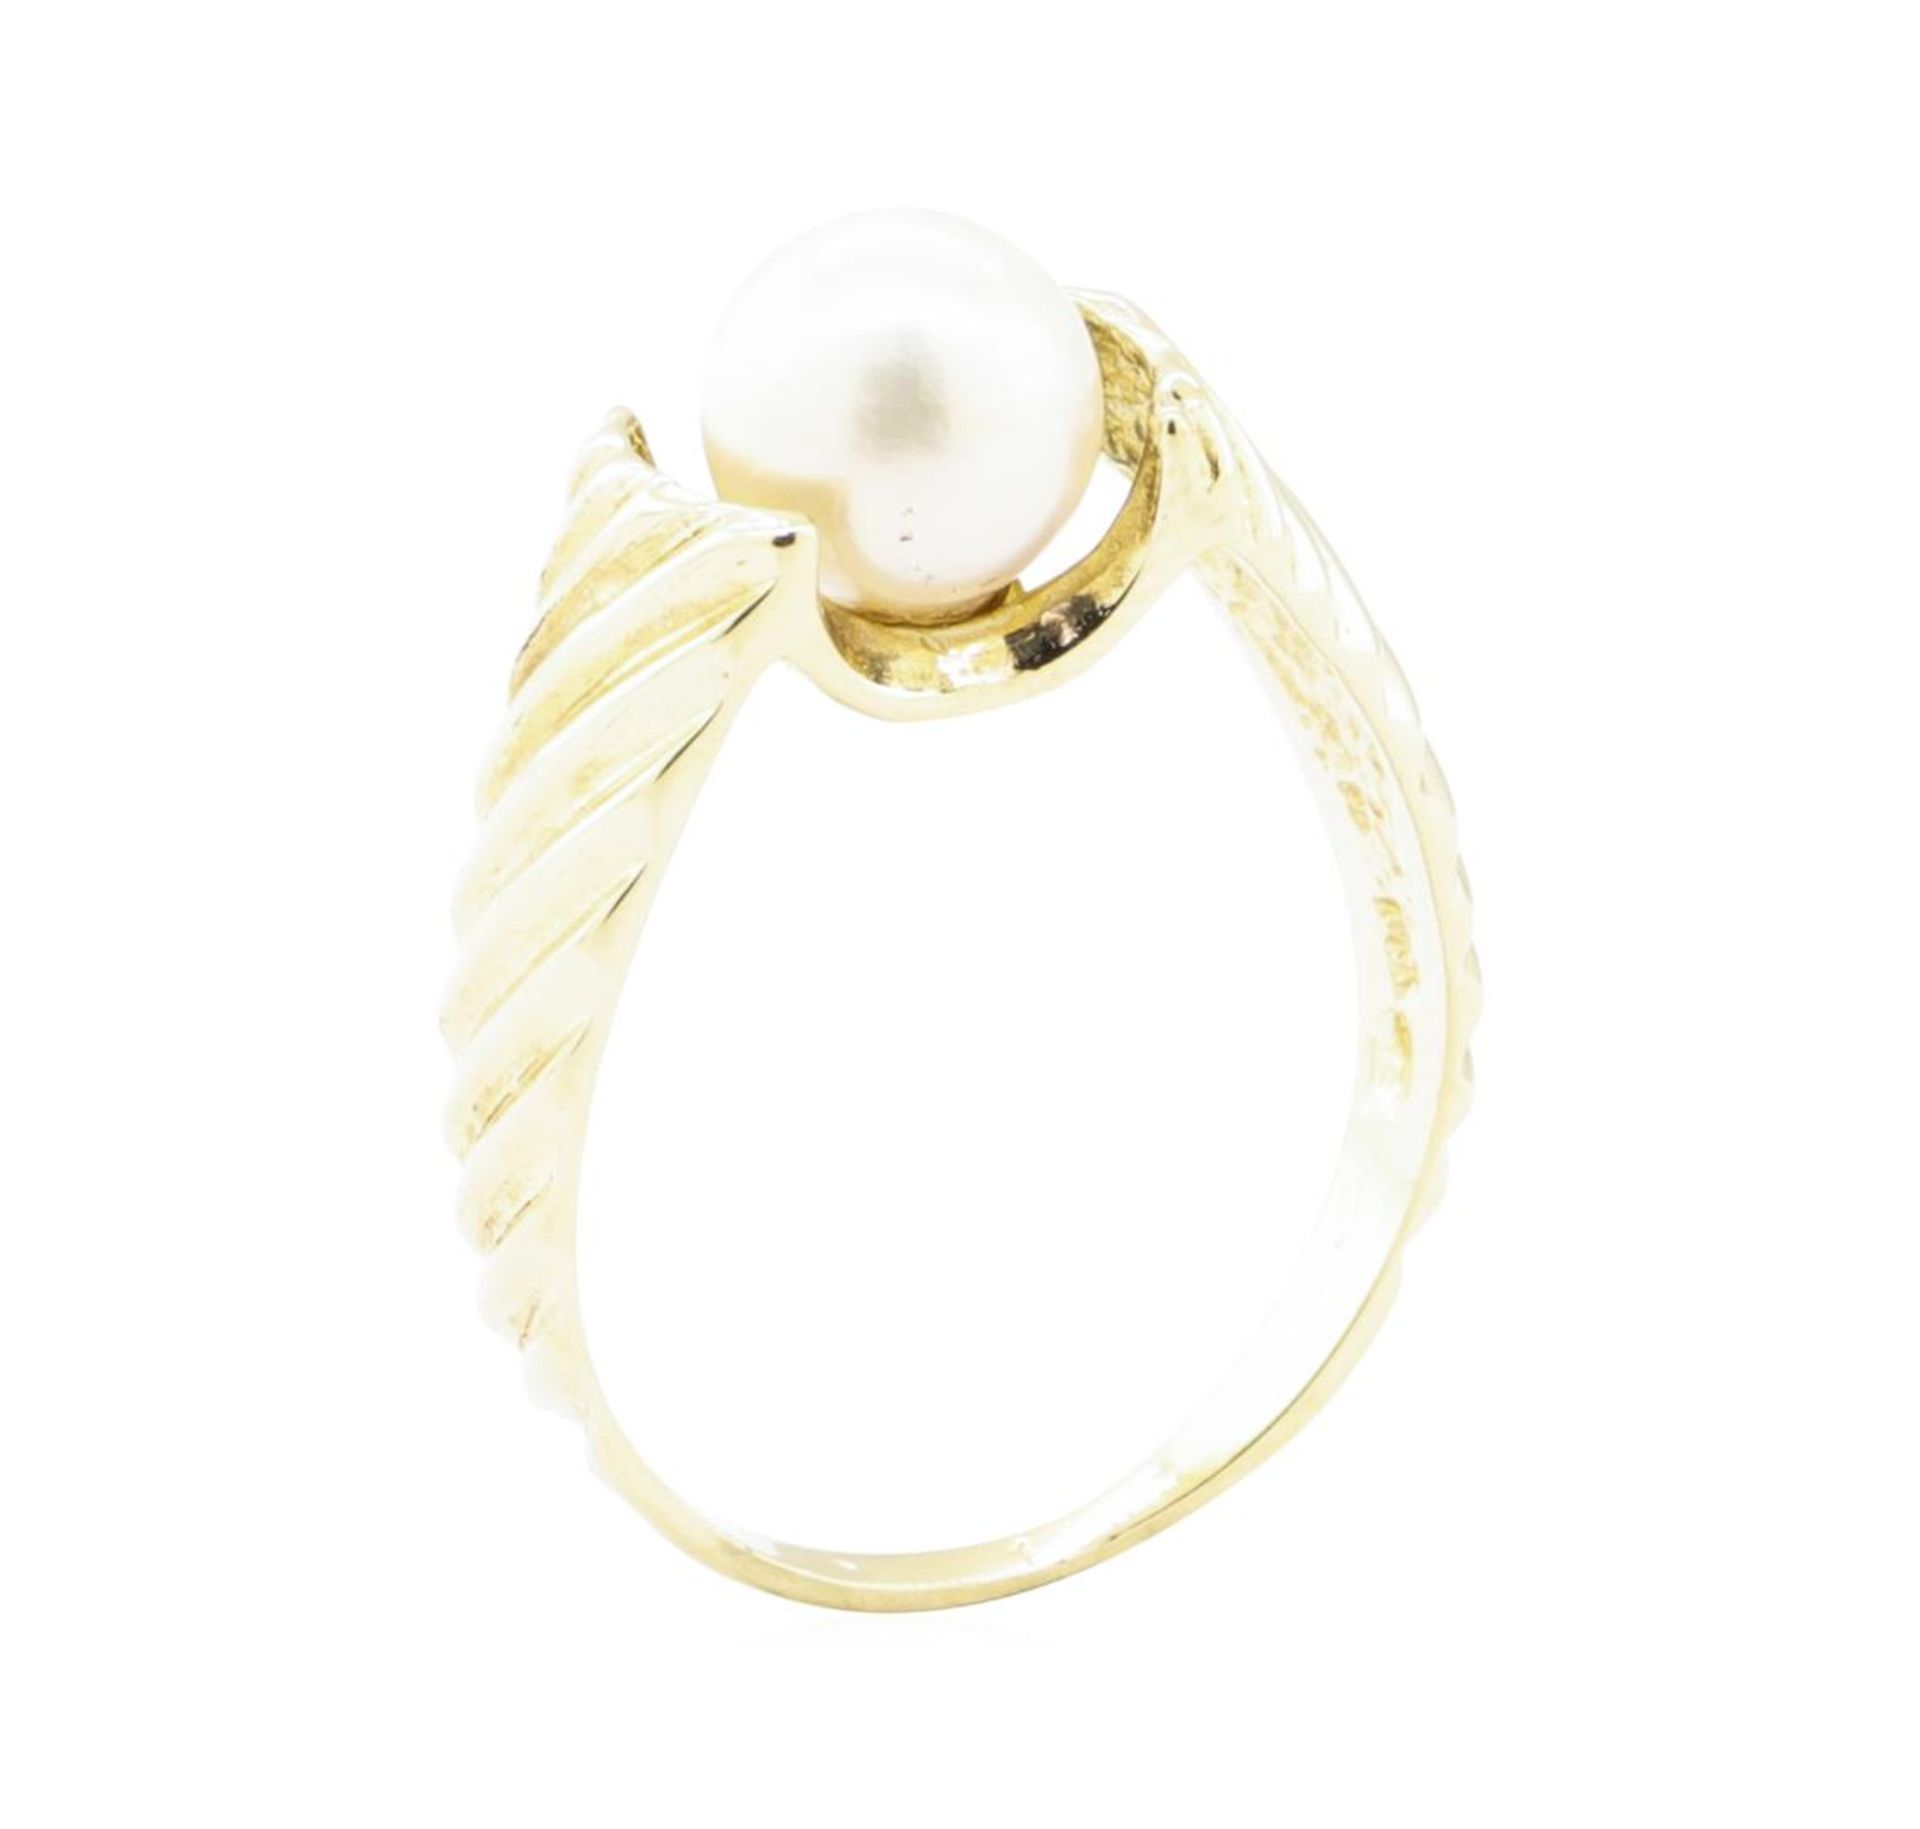 7mm Cultured Pearl Ring - 14KT Yellow Gold - Image 4 of 4